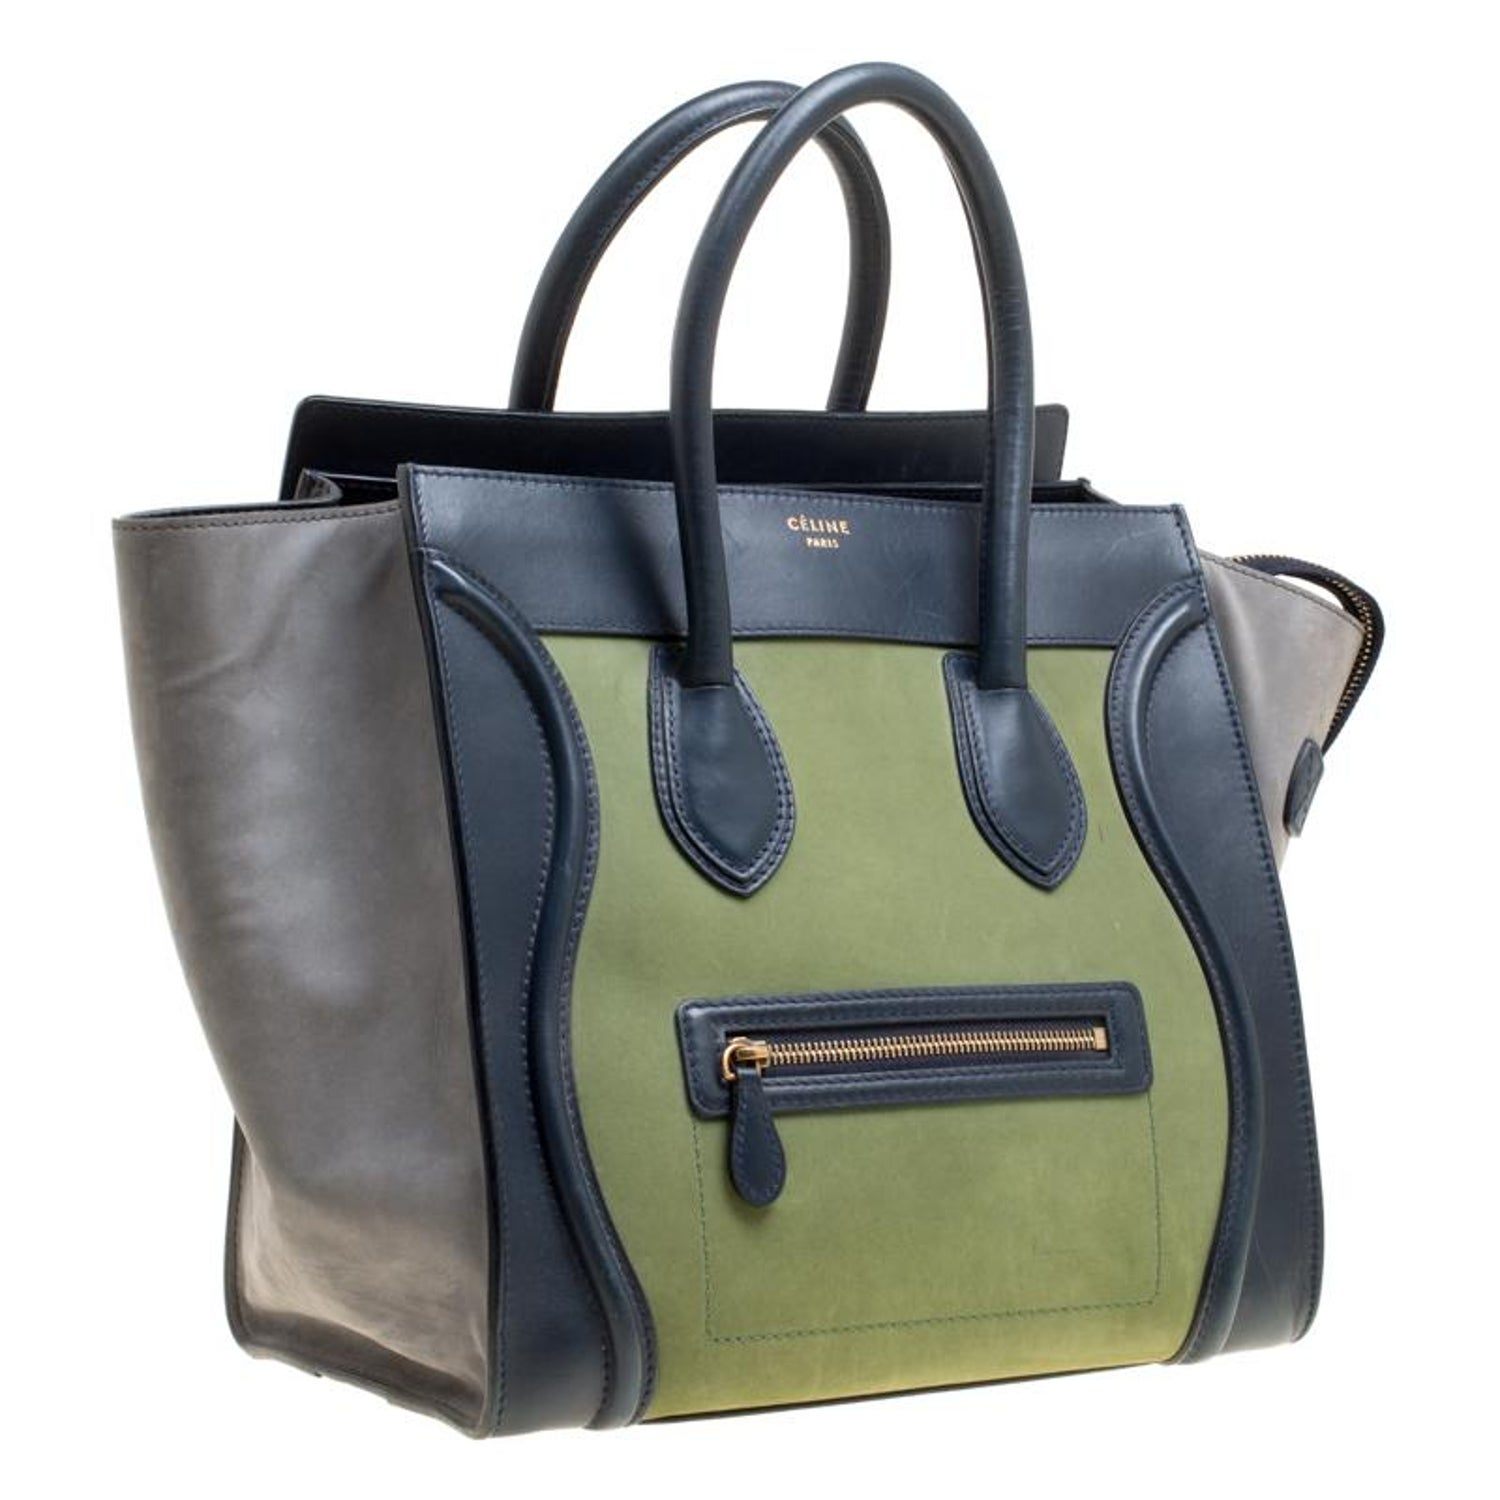 Celine Tri Color Leather and Suede Mini Luggage Tote For Sale at 1stdibs 9cd6761047379